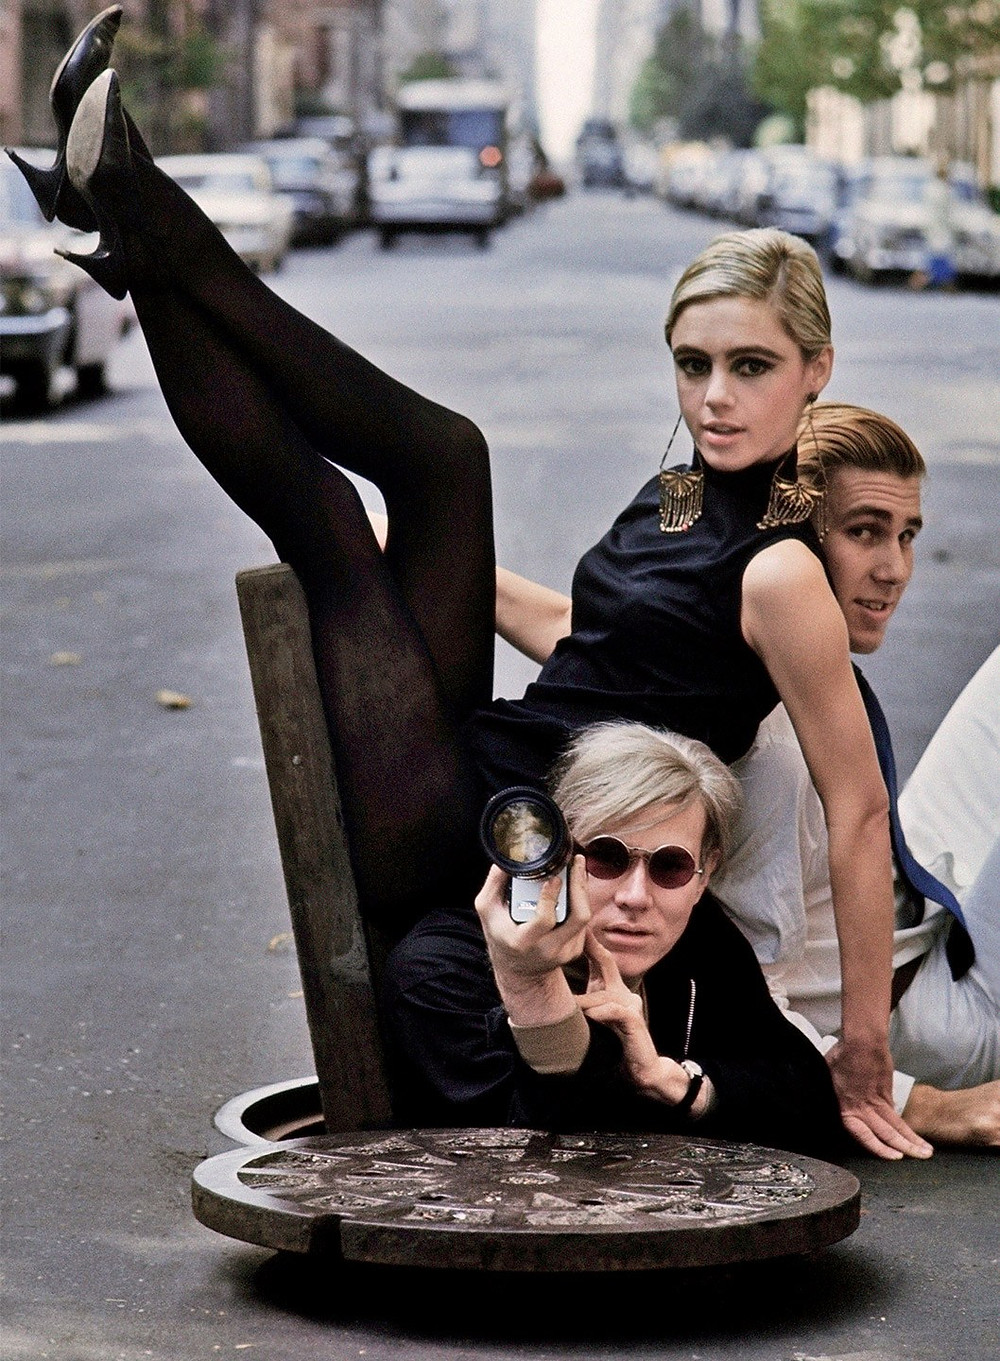 Edie Sedgwick and Andy Warhol on the cover of Vanity Fair Holiday 2017-18 issue